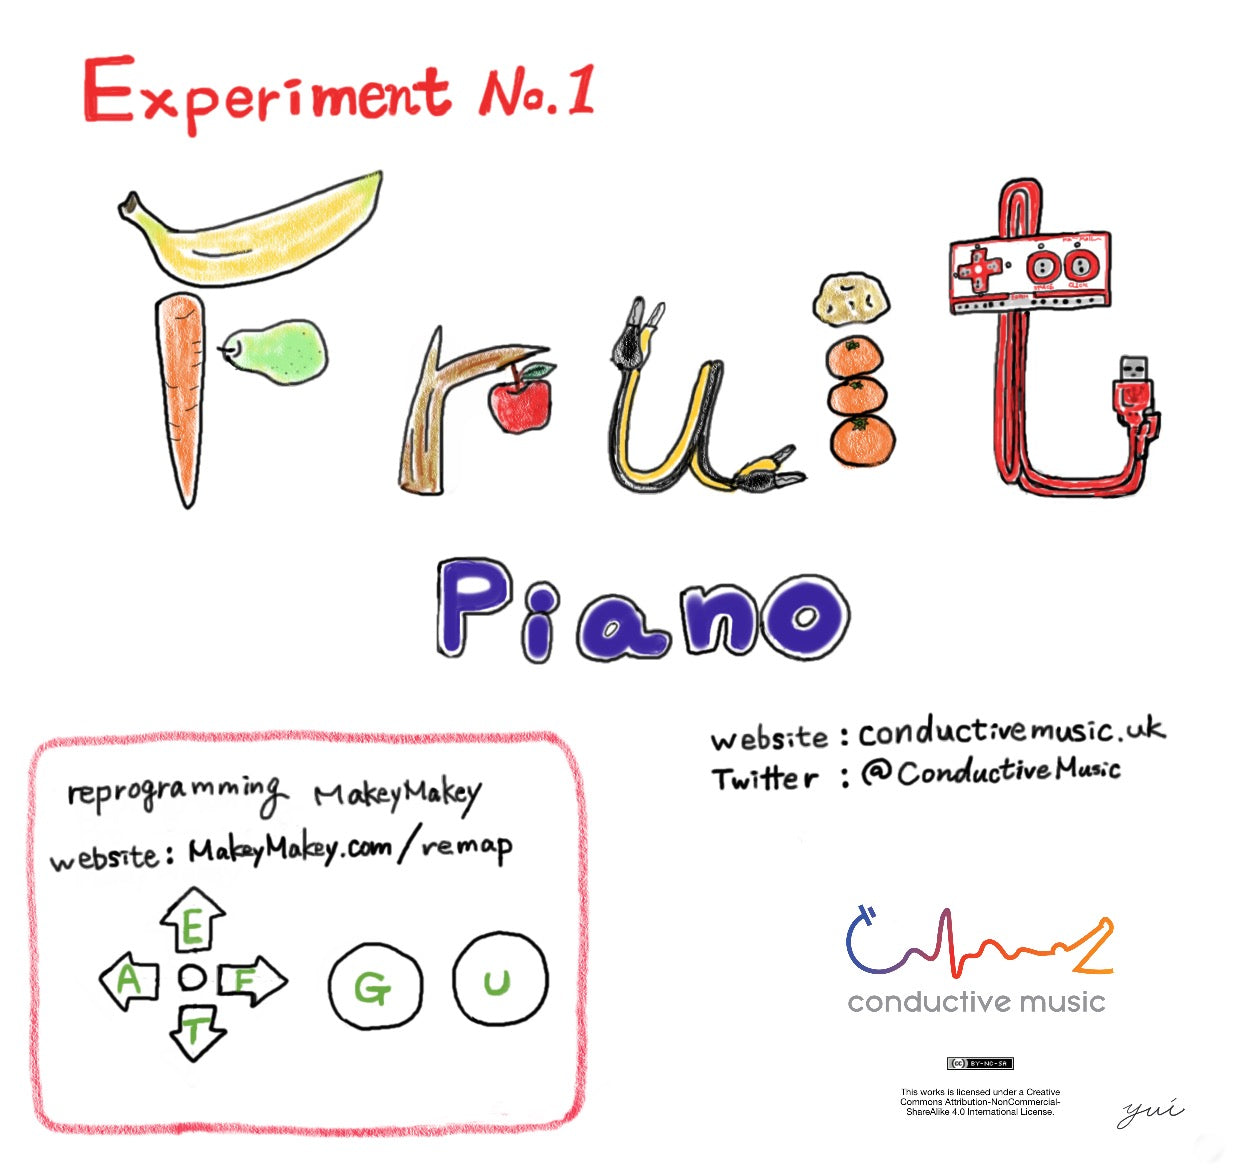 Fruit Piano (Experiment No. 1) by Yui of Conductive Music